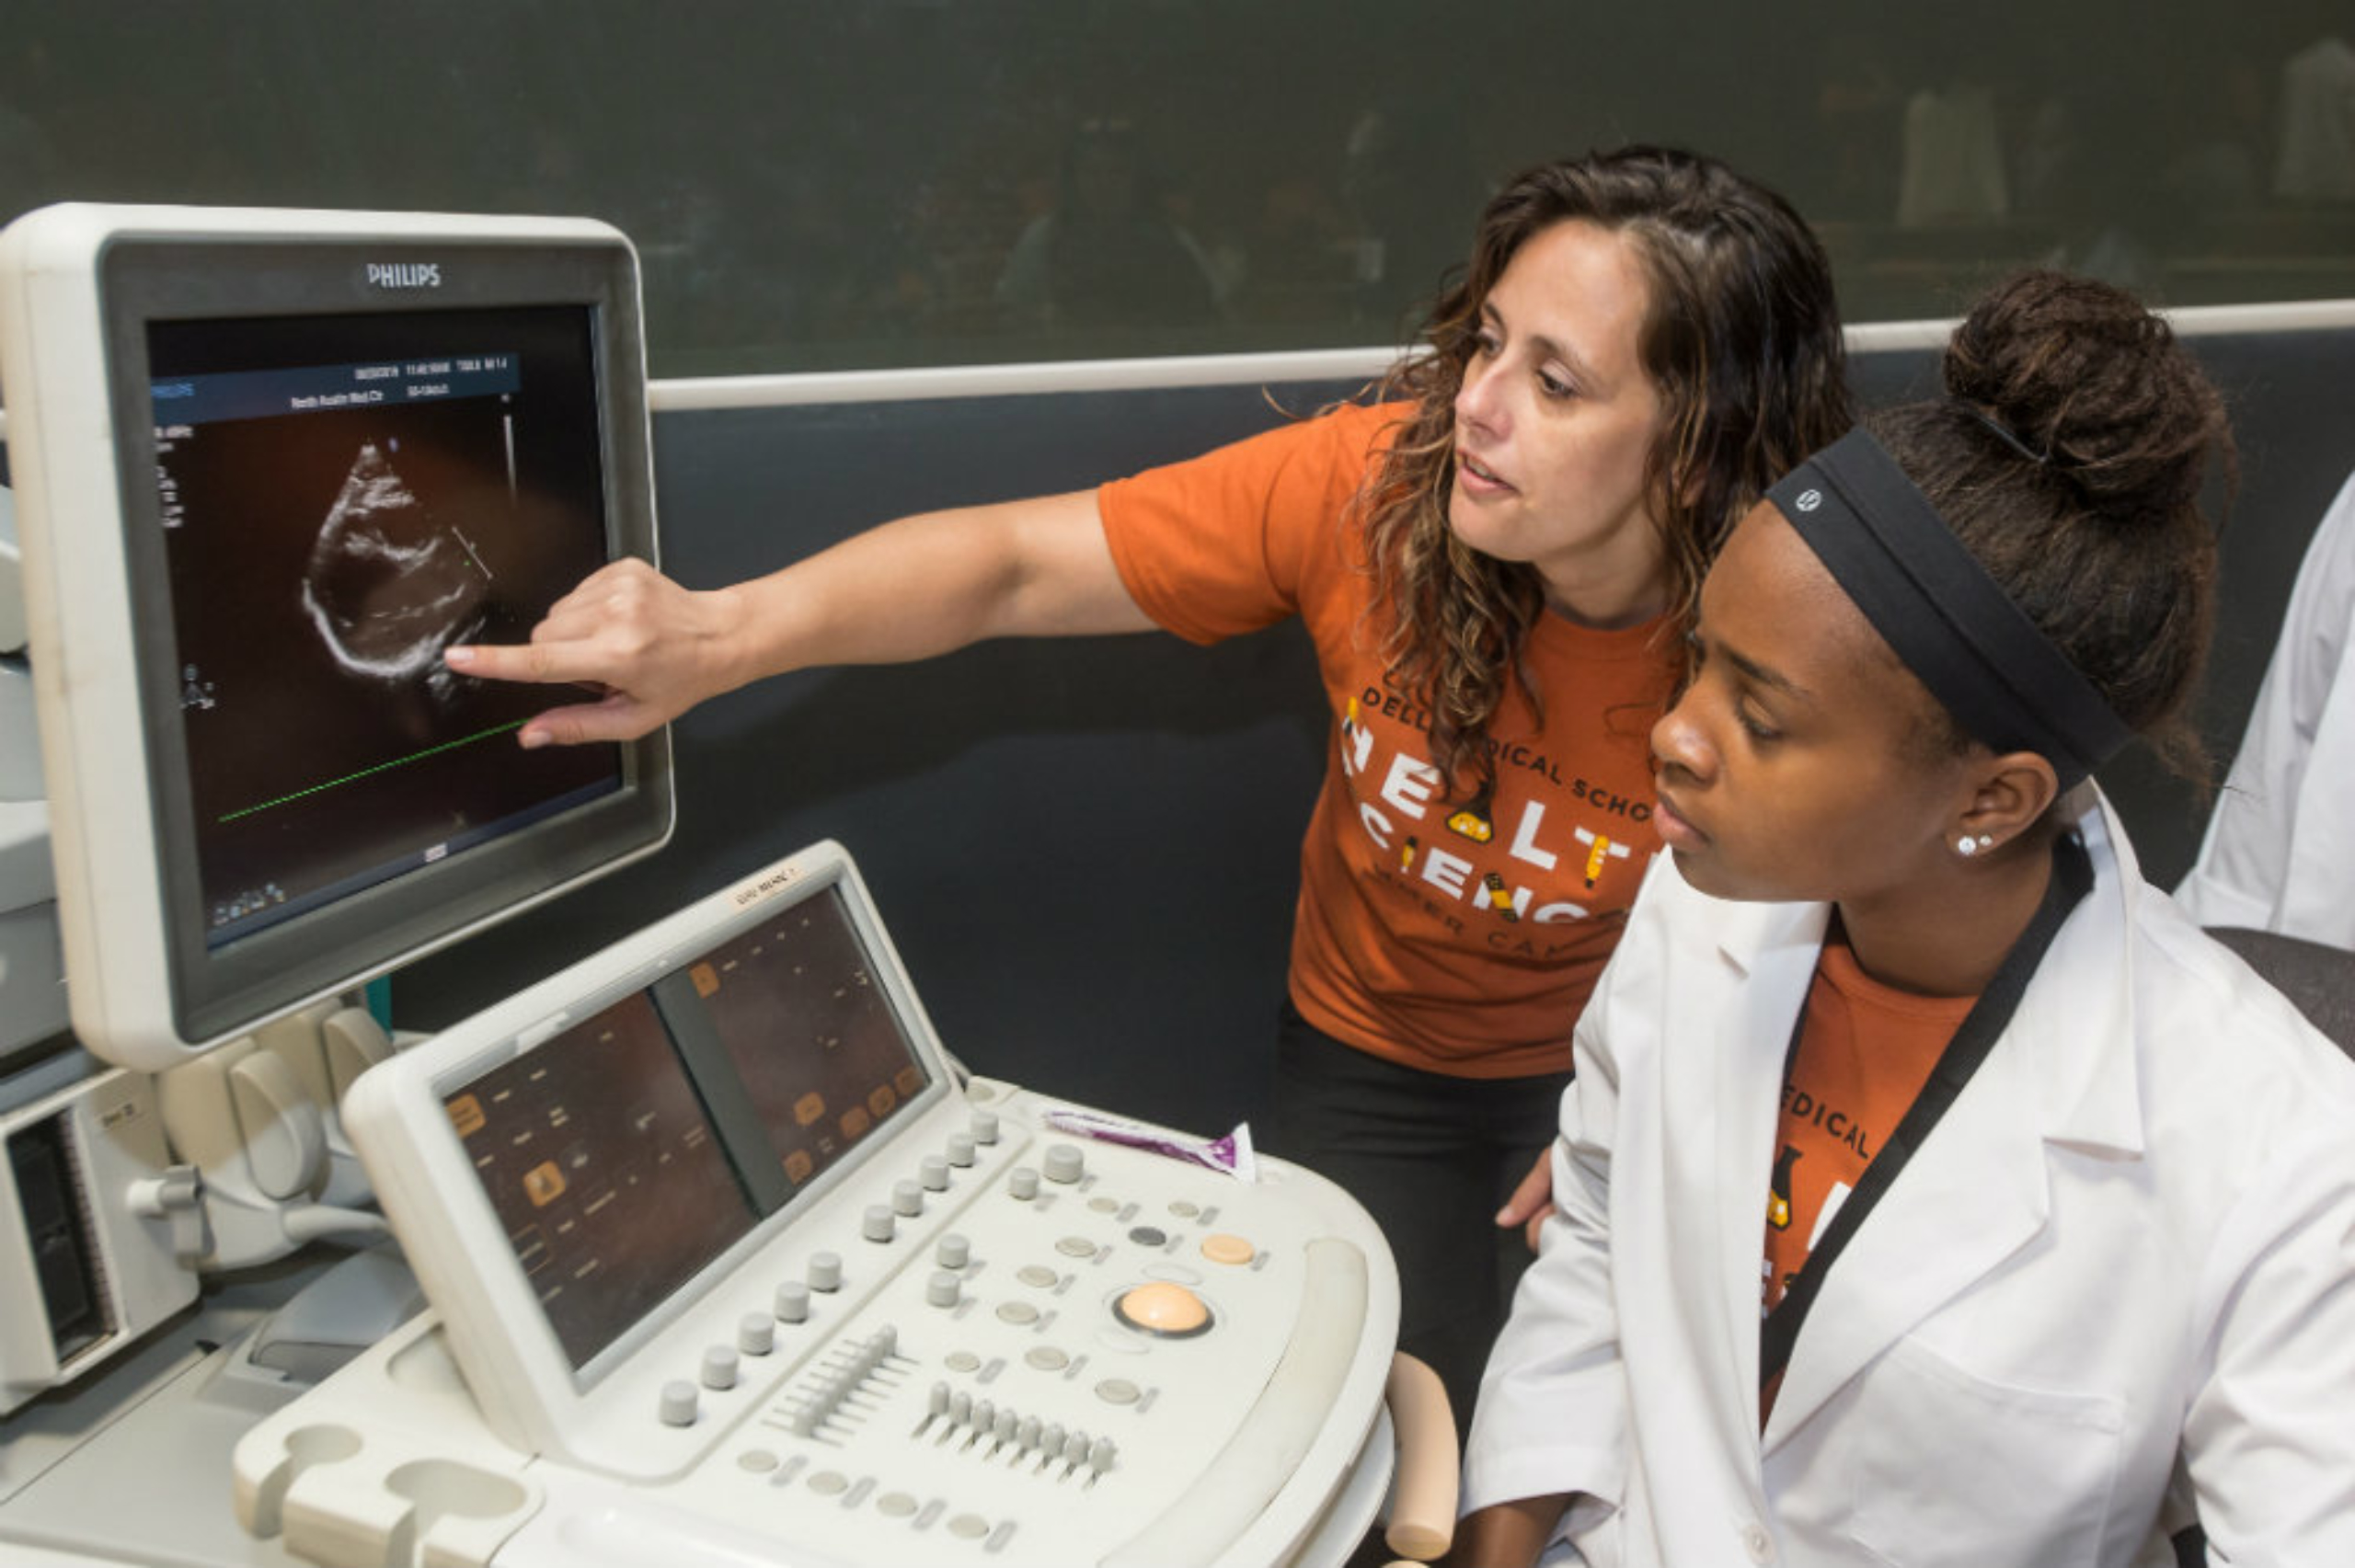 A participant of Dell Med's Health Sciences Summer Camps uses an echocardiogram